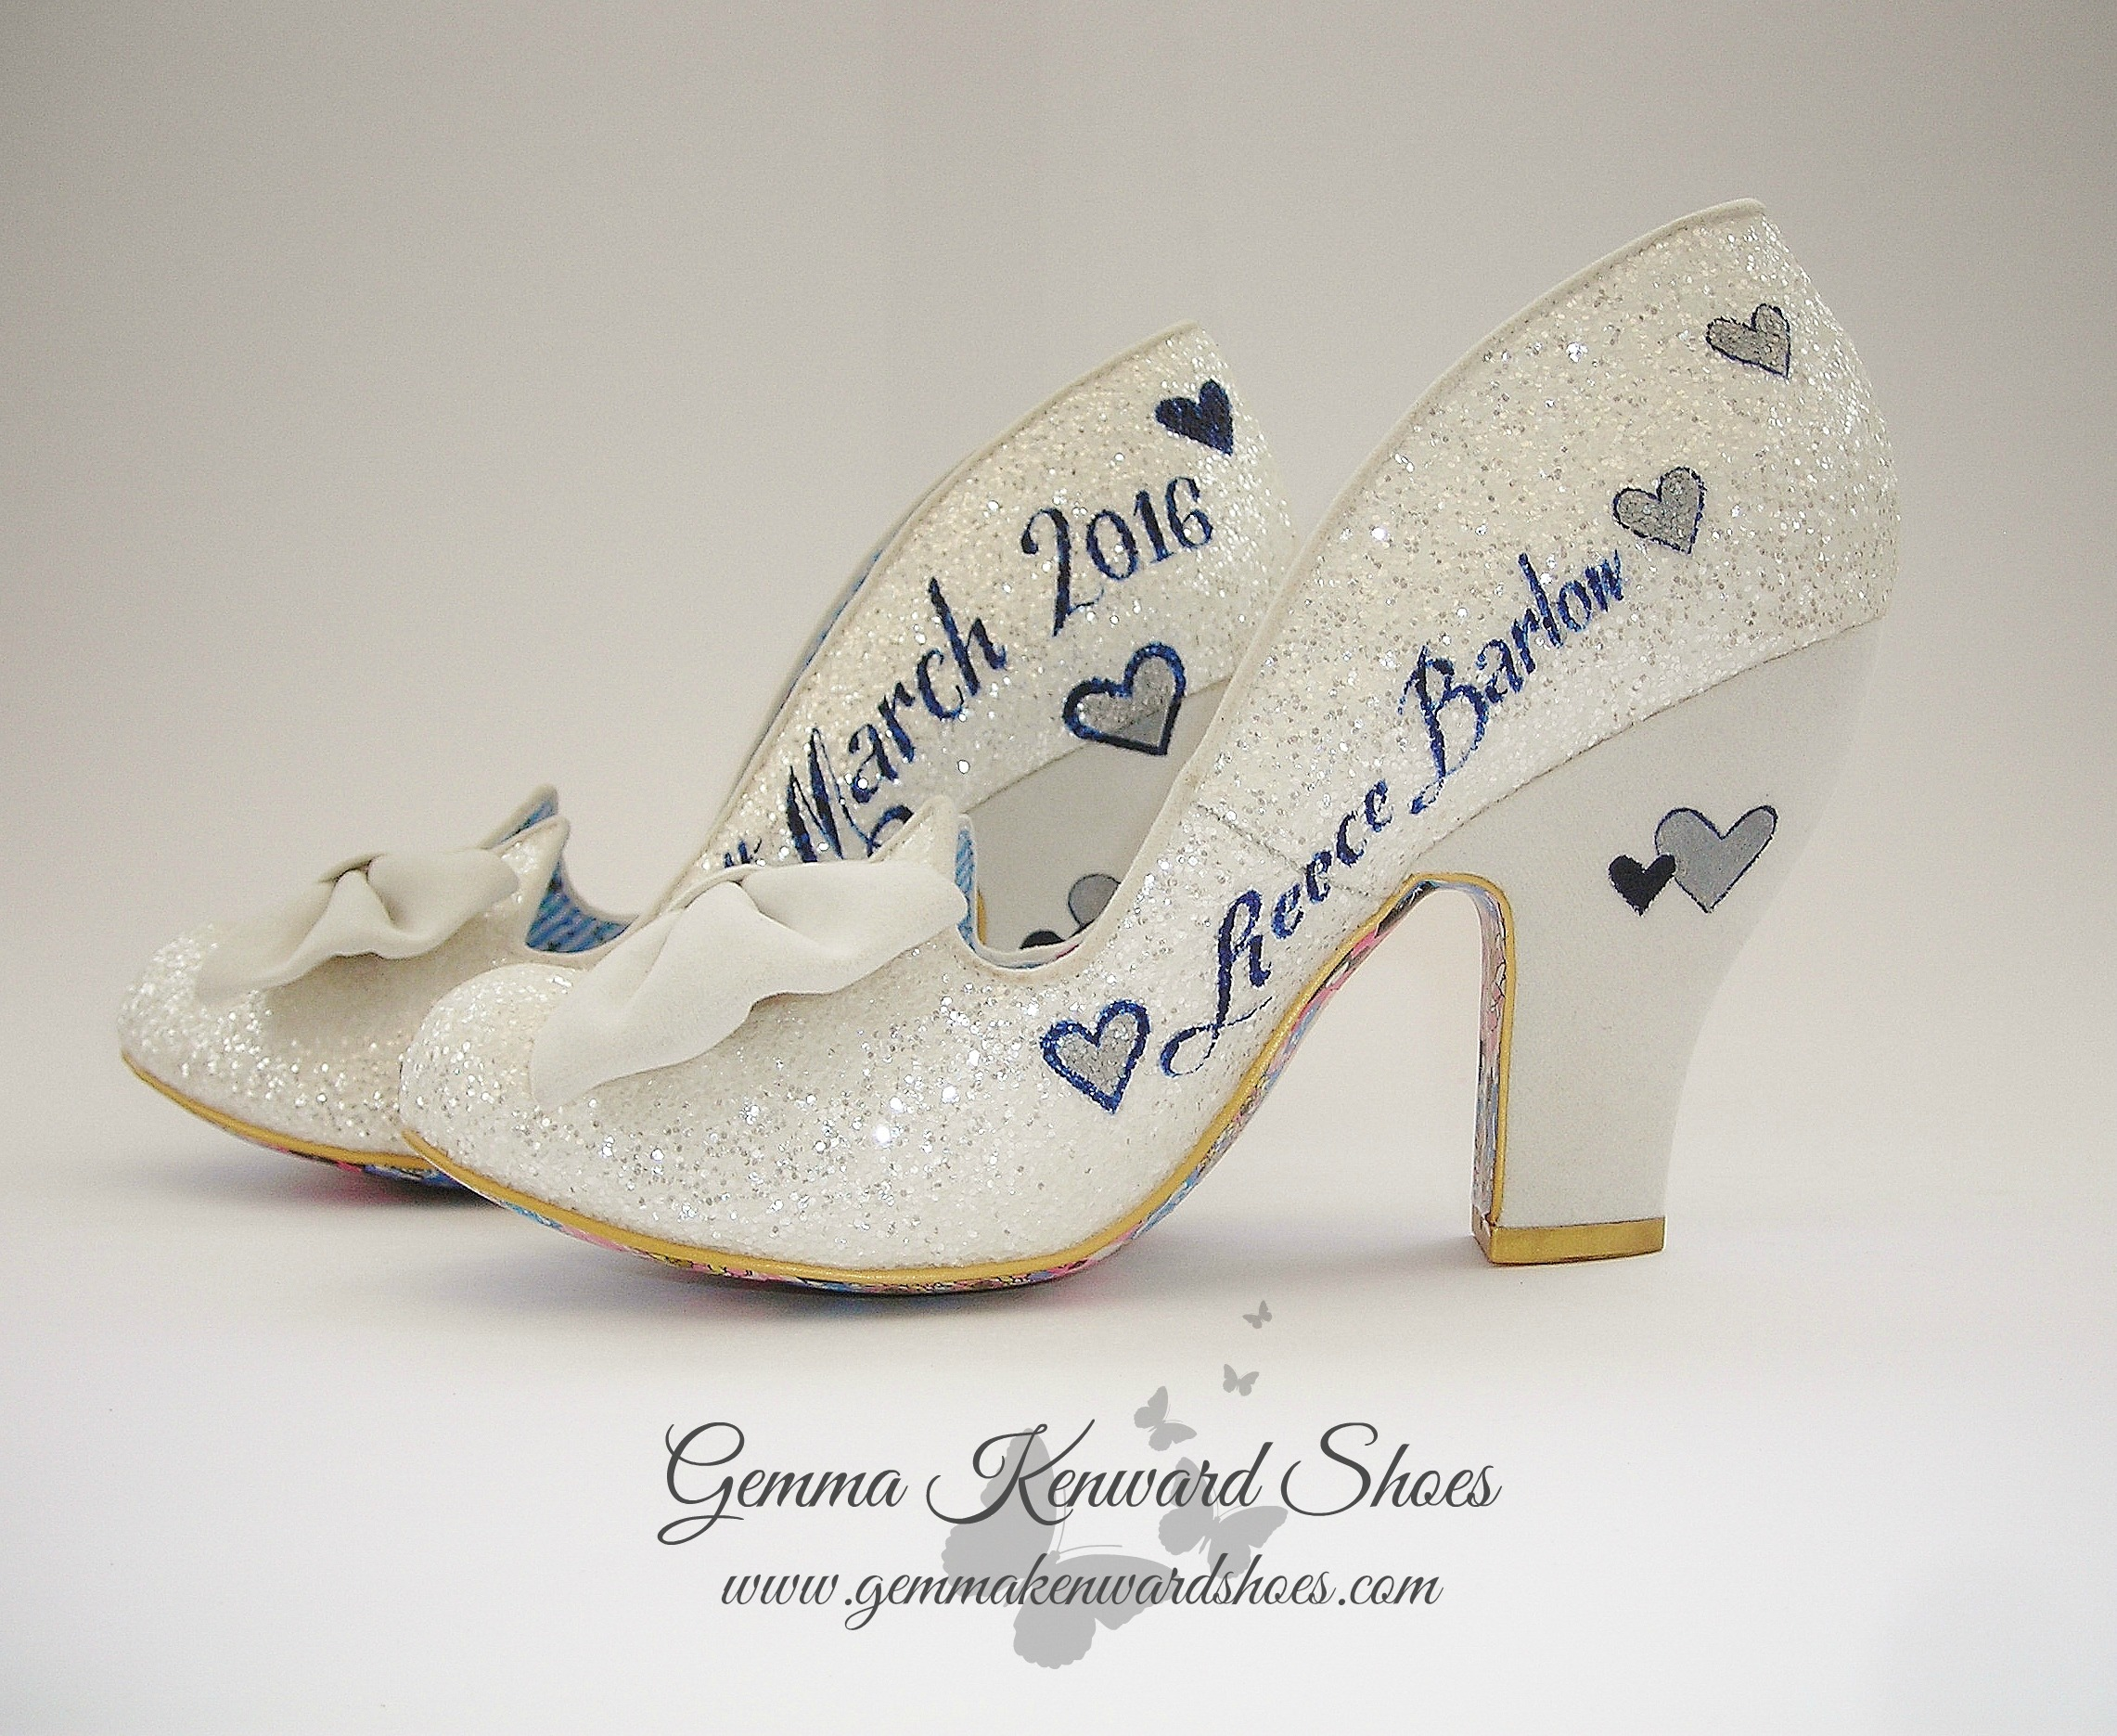 Bows on Irregular Choice wedding shoes painted with navy and silver hearts, names and date